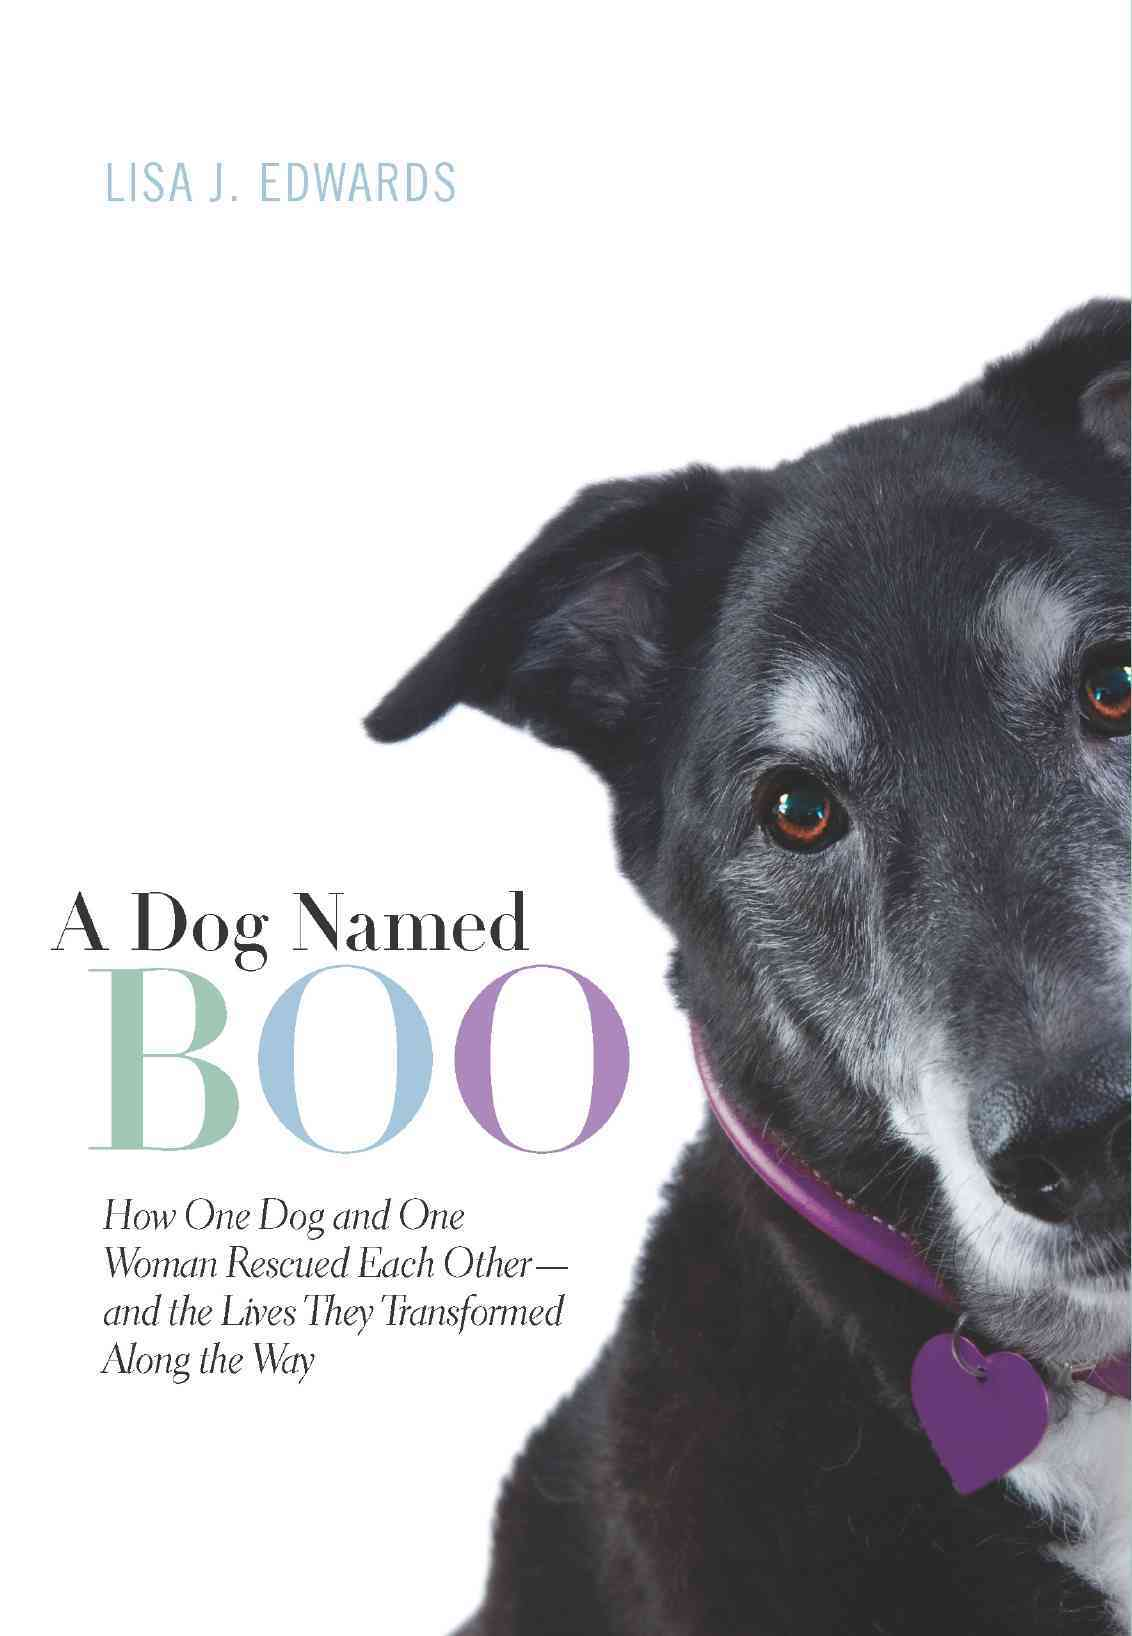 A Dog Named Boo: How One Dog and One Woman Rescued Each Other - and the Lives They Transformed Along the Way (Hardcover)